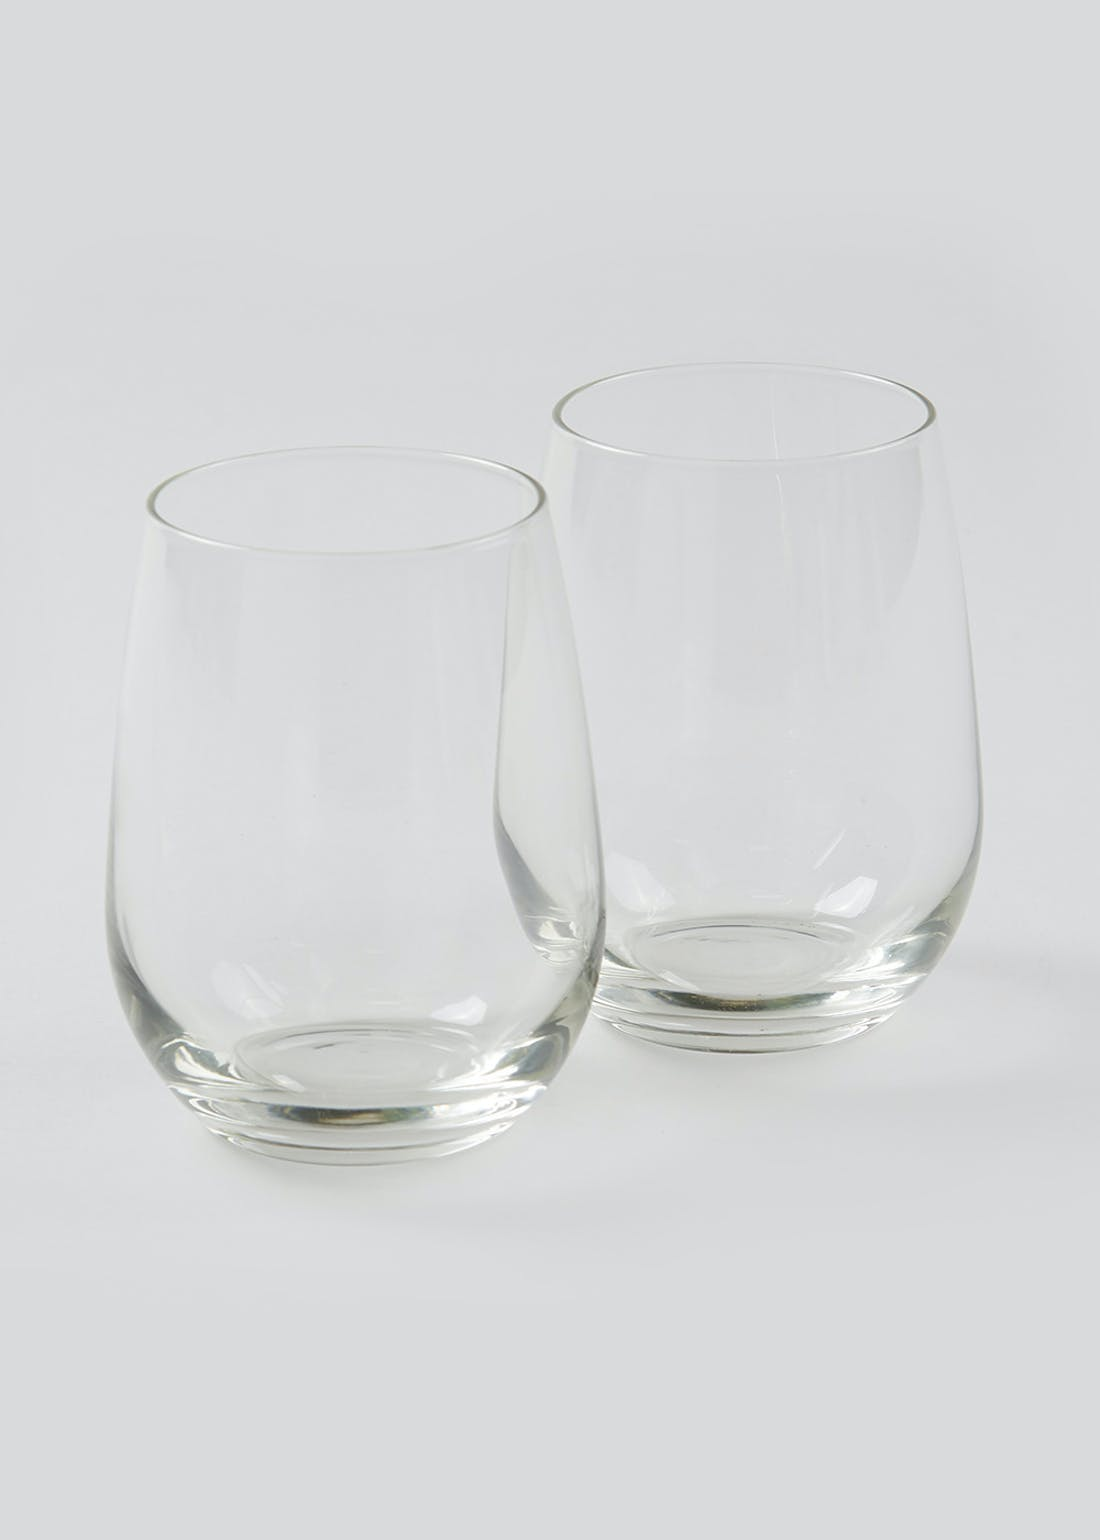 2 Pack Stemless Wine Glasses (11cm x 7cm)